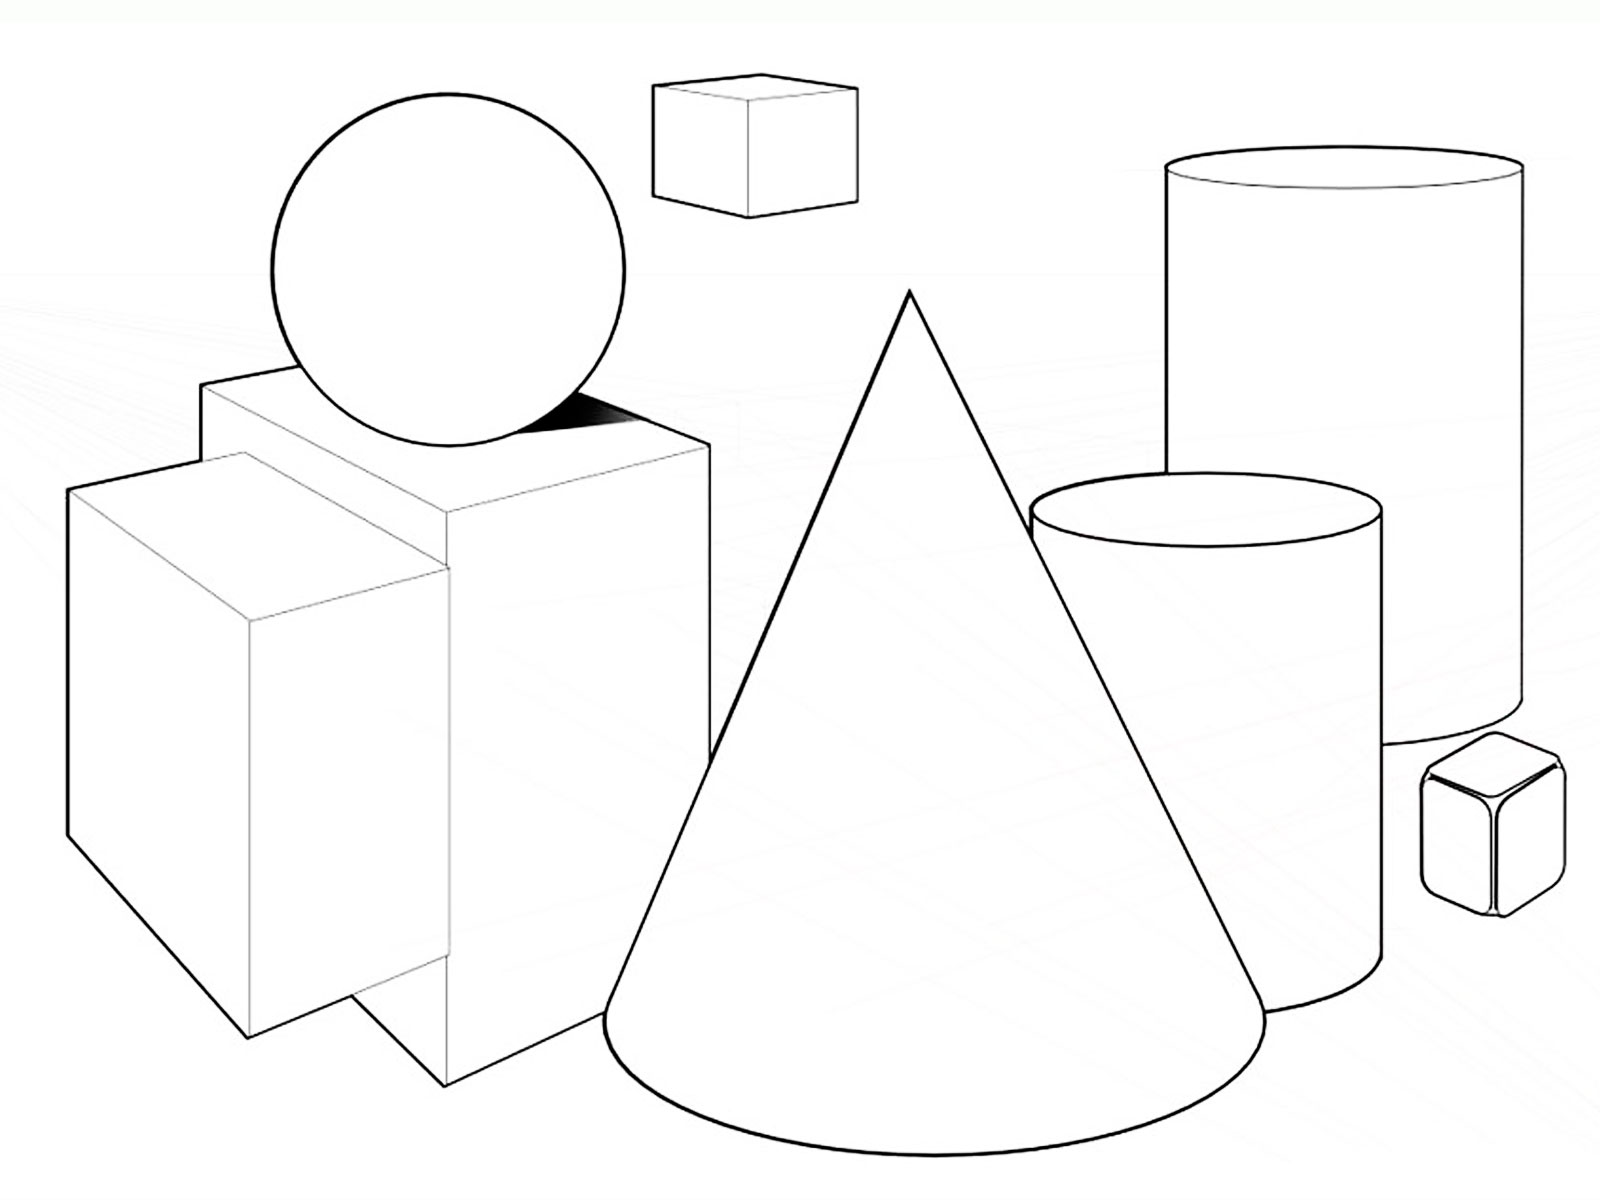 Drawn shapes geometric shape Kids Pages Coloring Shapes Pages